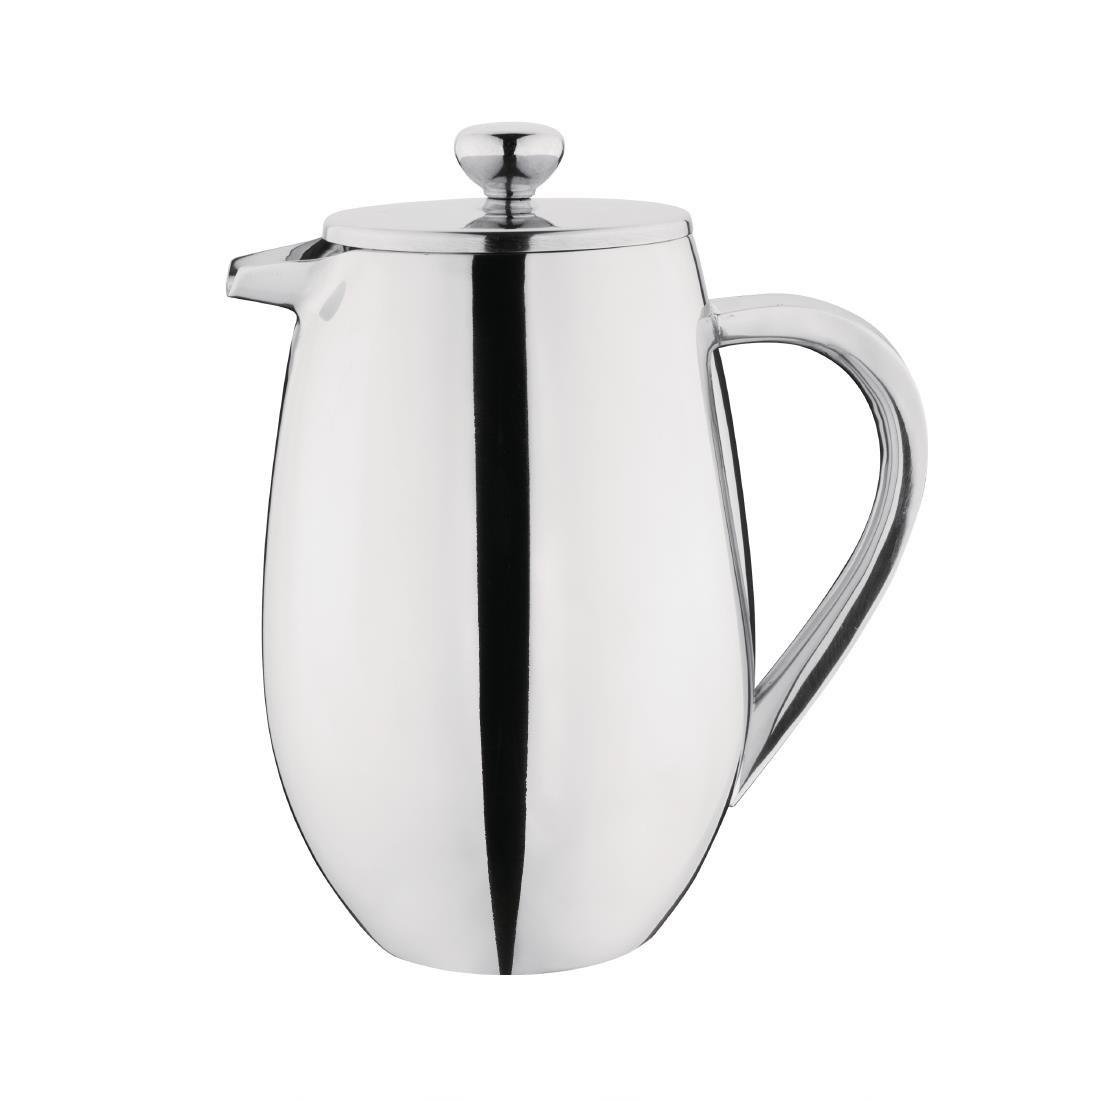 W837 - Stainless Steel Cafetiere